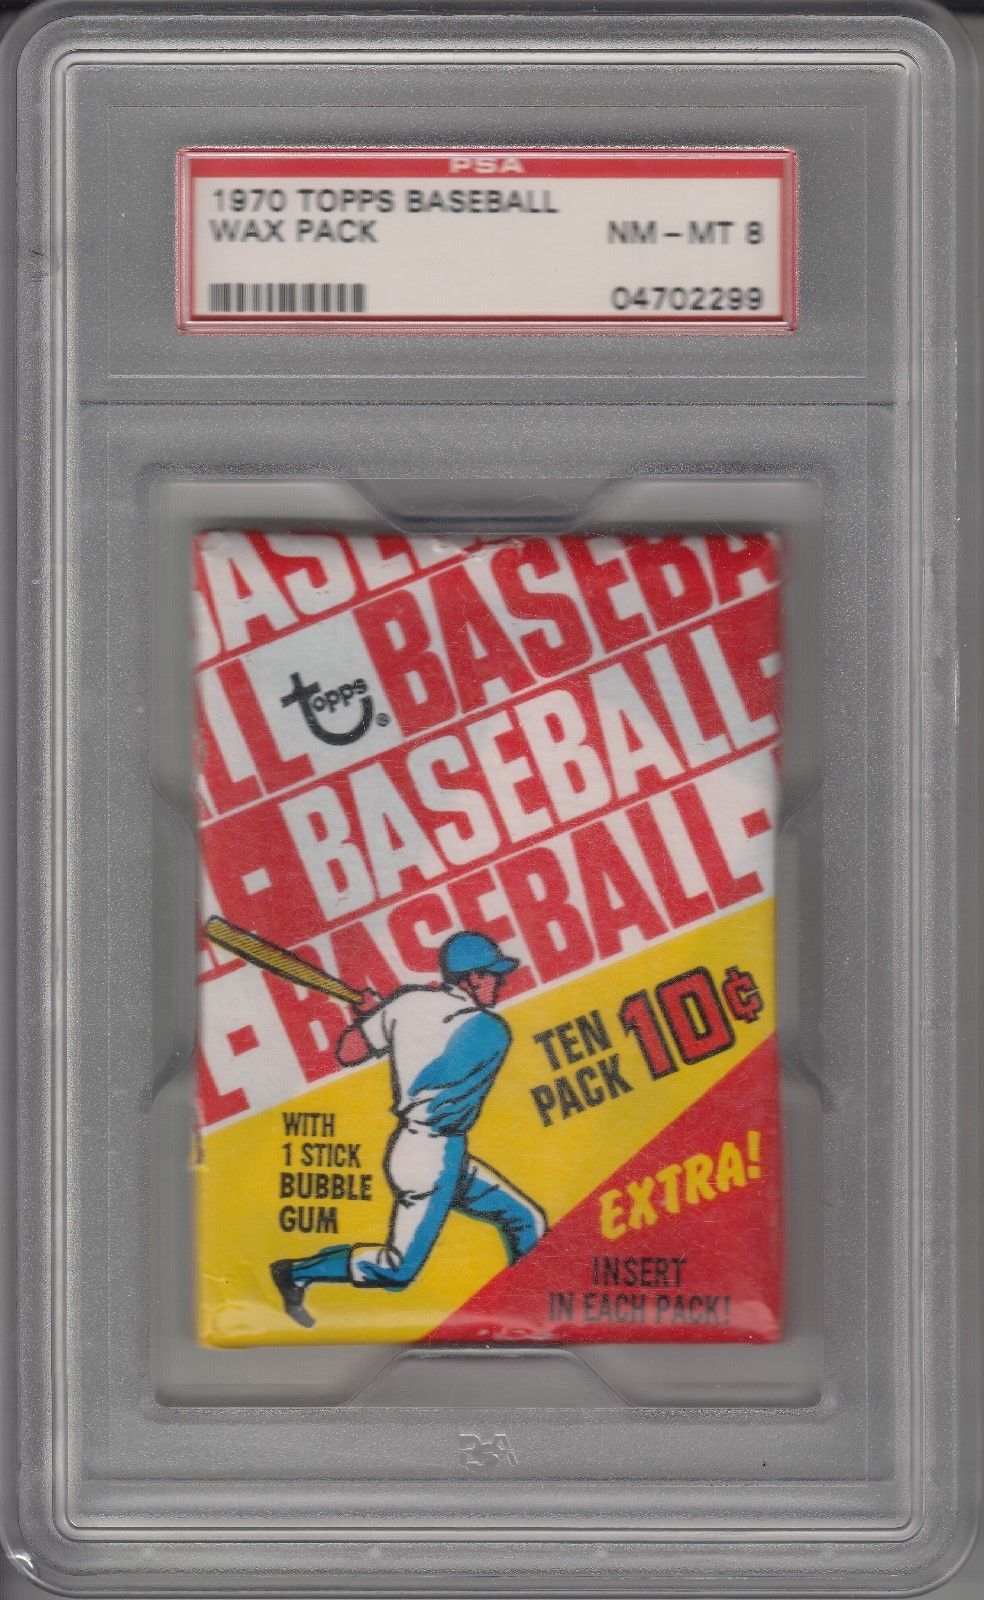 1970 topps baseball unopened wax pack psa 8 collect